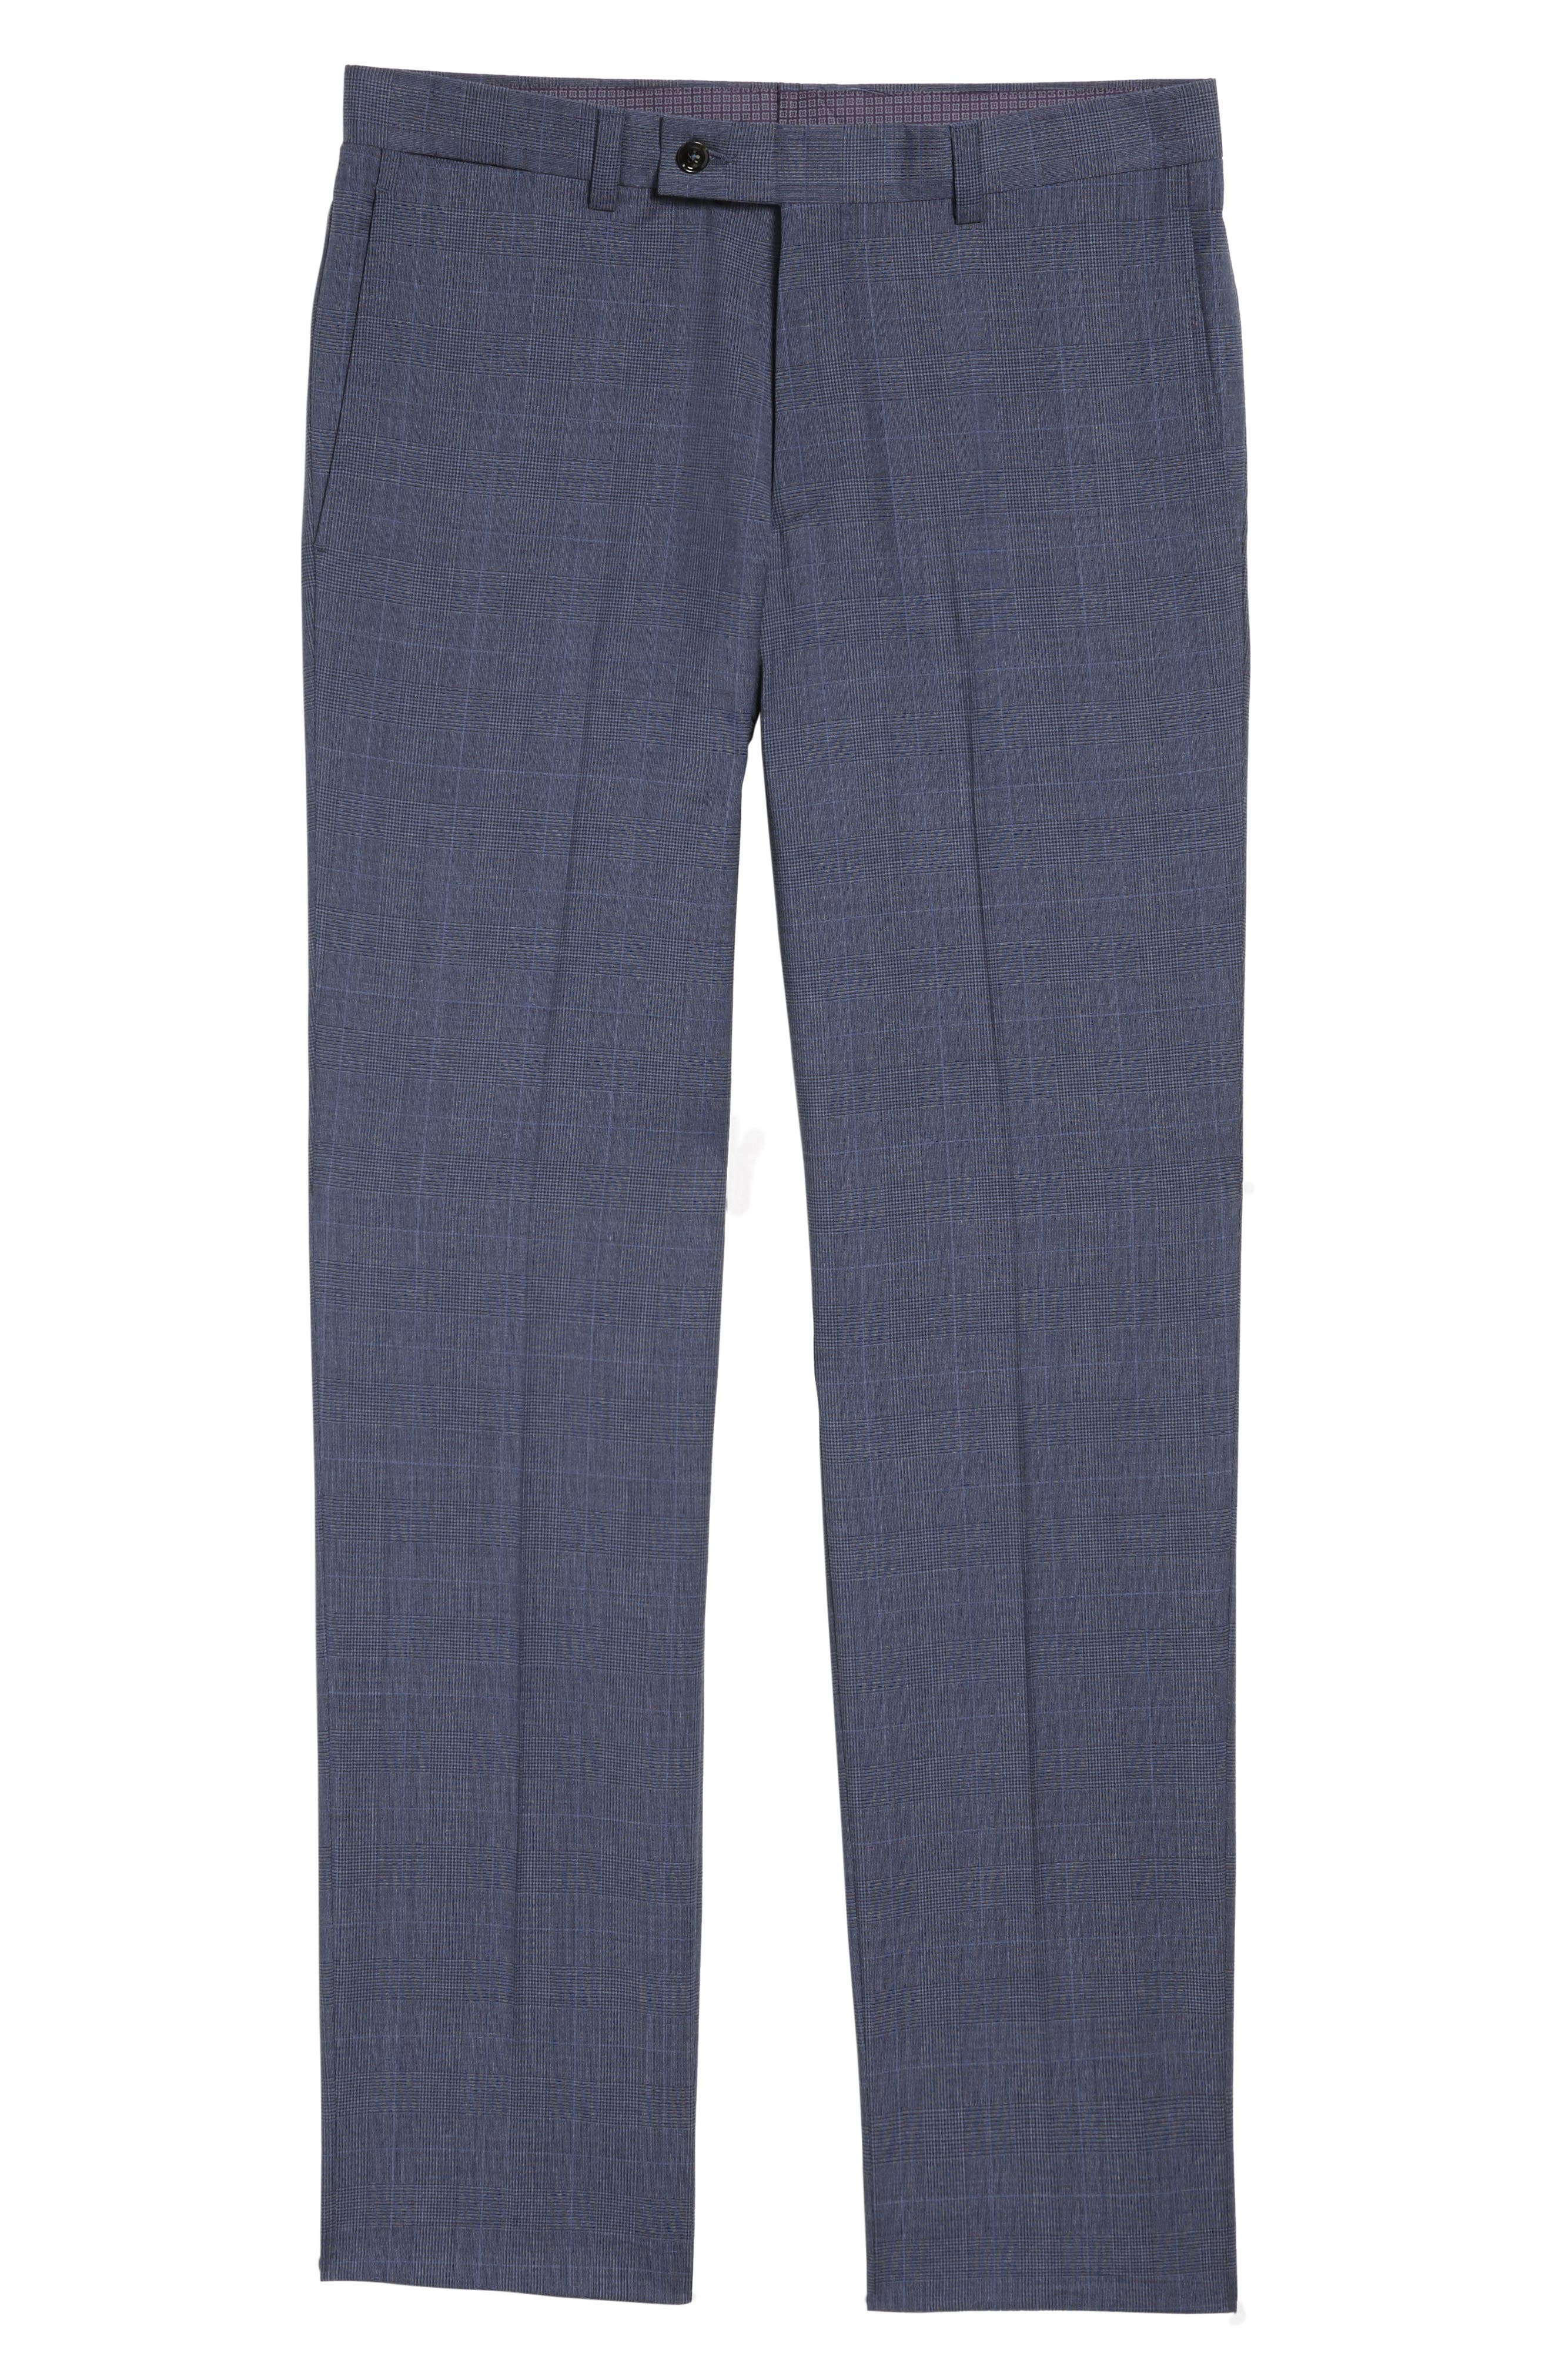 Jefferson Flat Front Wool Trousers,                             Alternate thumbnail 6, color,                             Blue